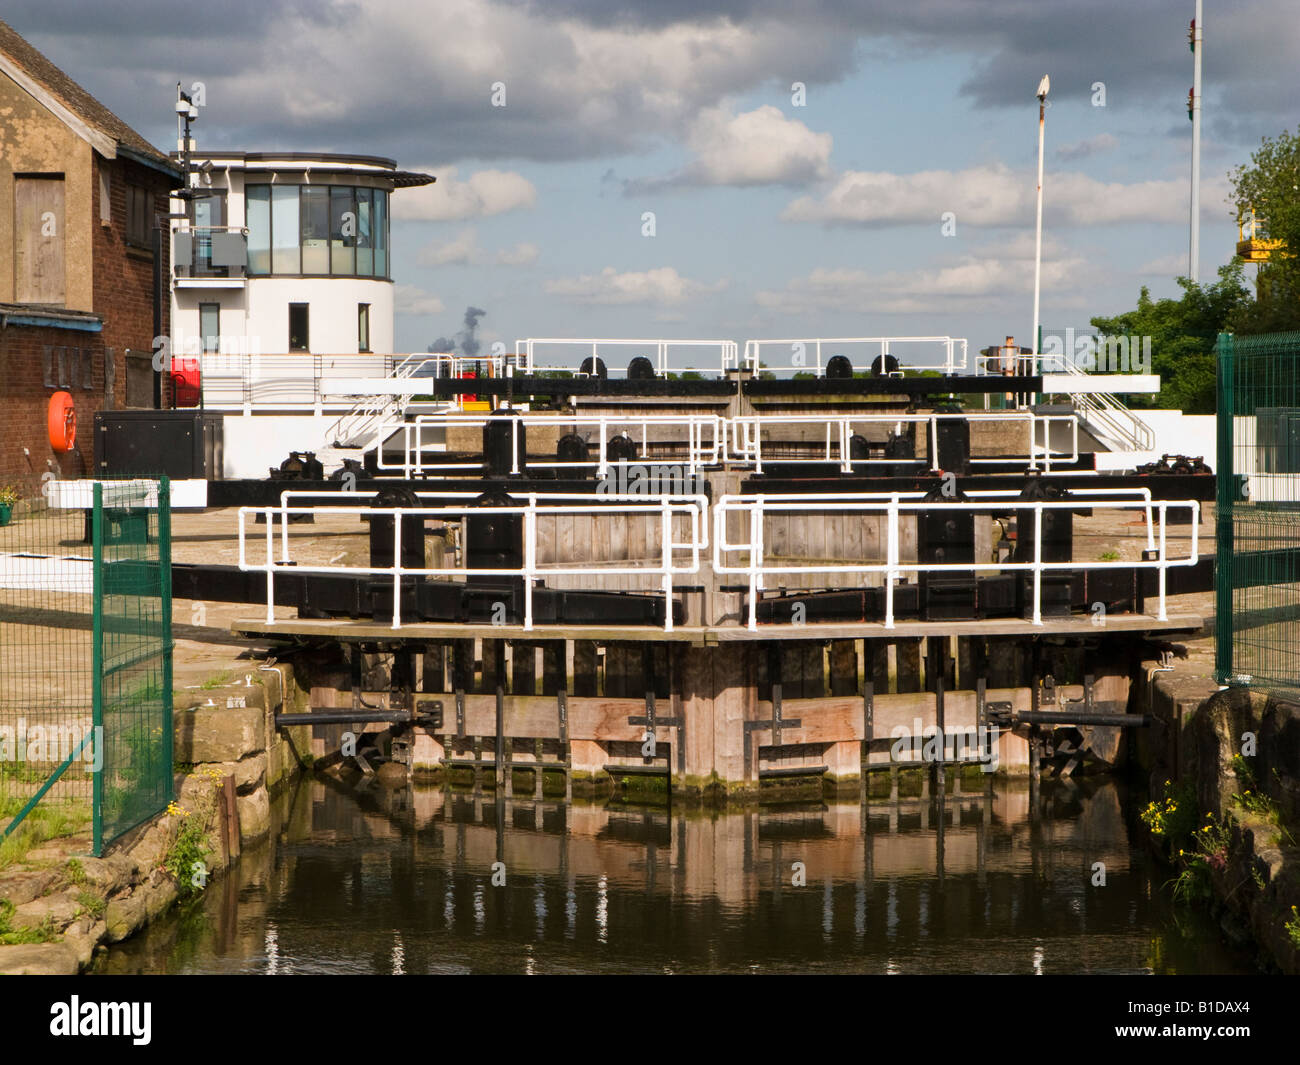 Multiple canal lock gates on the Stainforth and Keadby Canal at Keadby Lock, Keadby North Lincolnshire UK - Stock Image